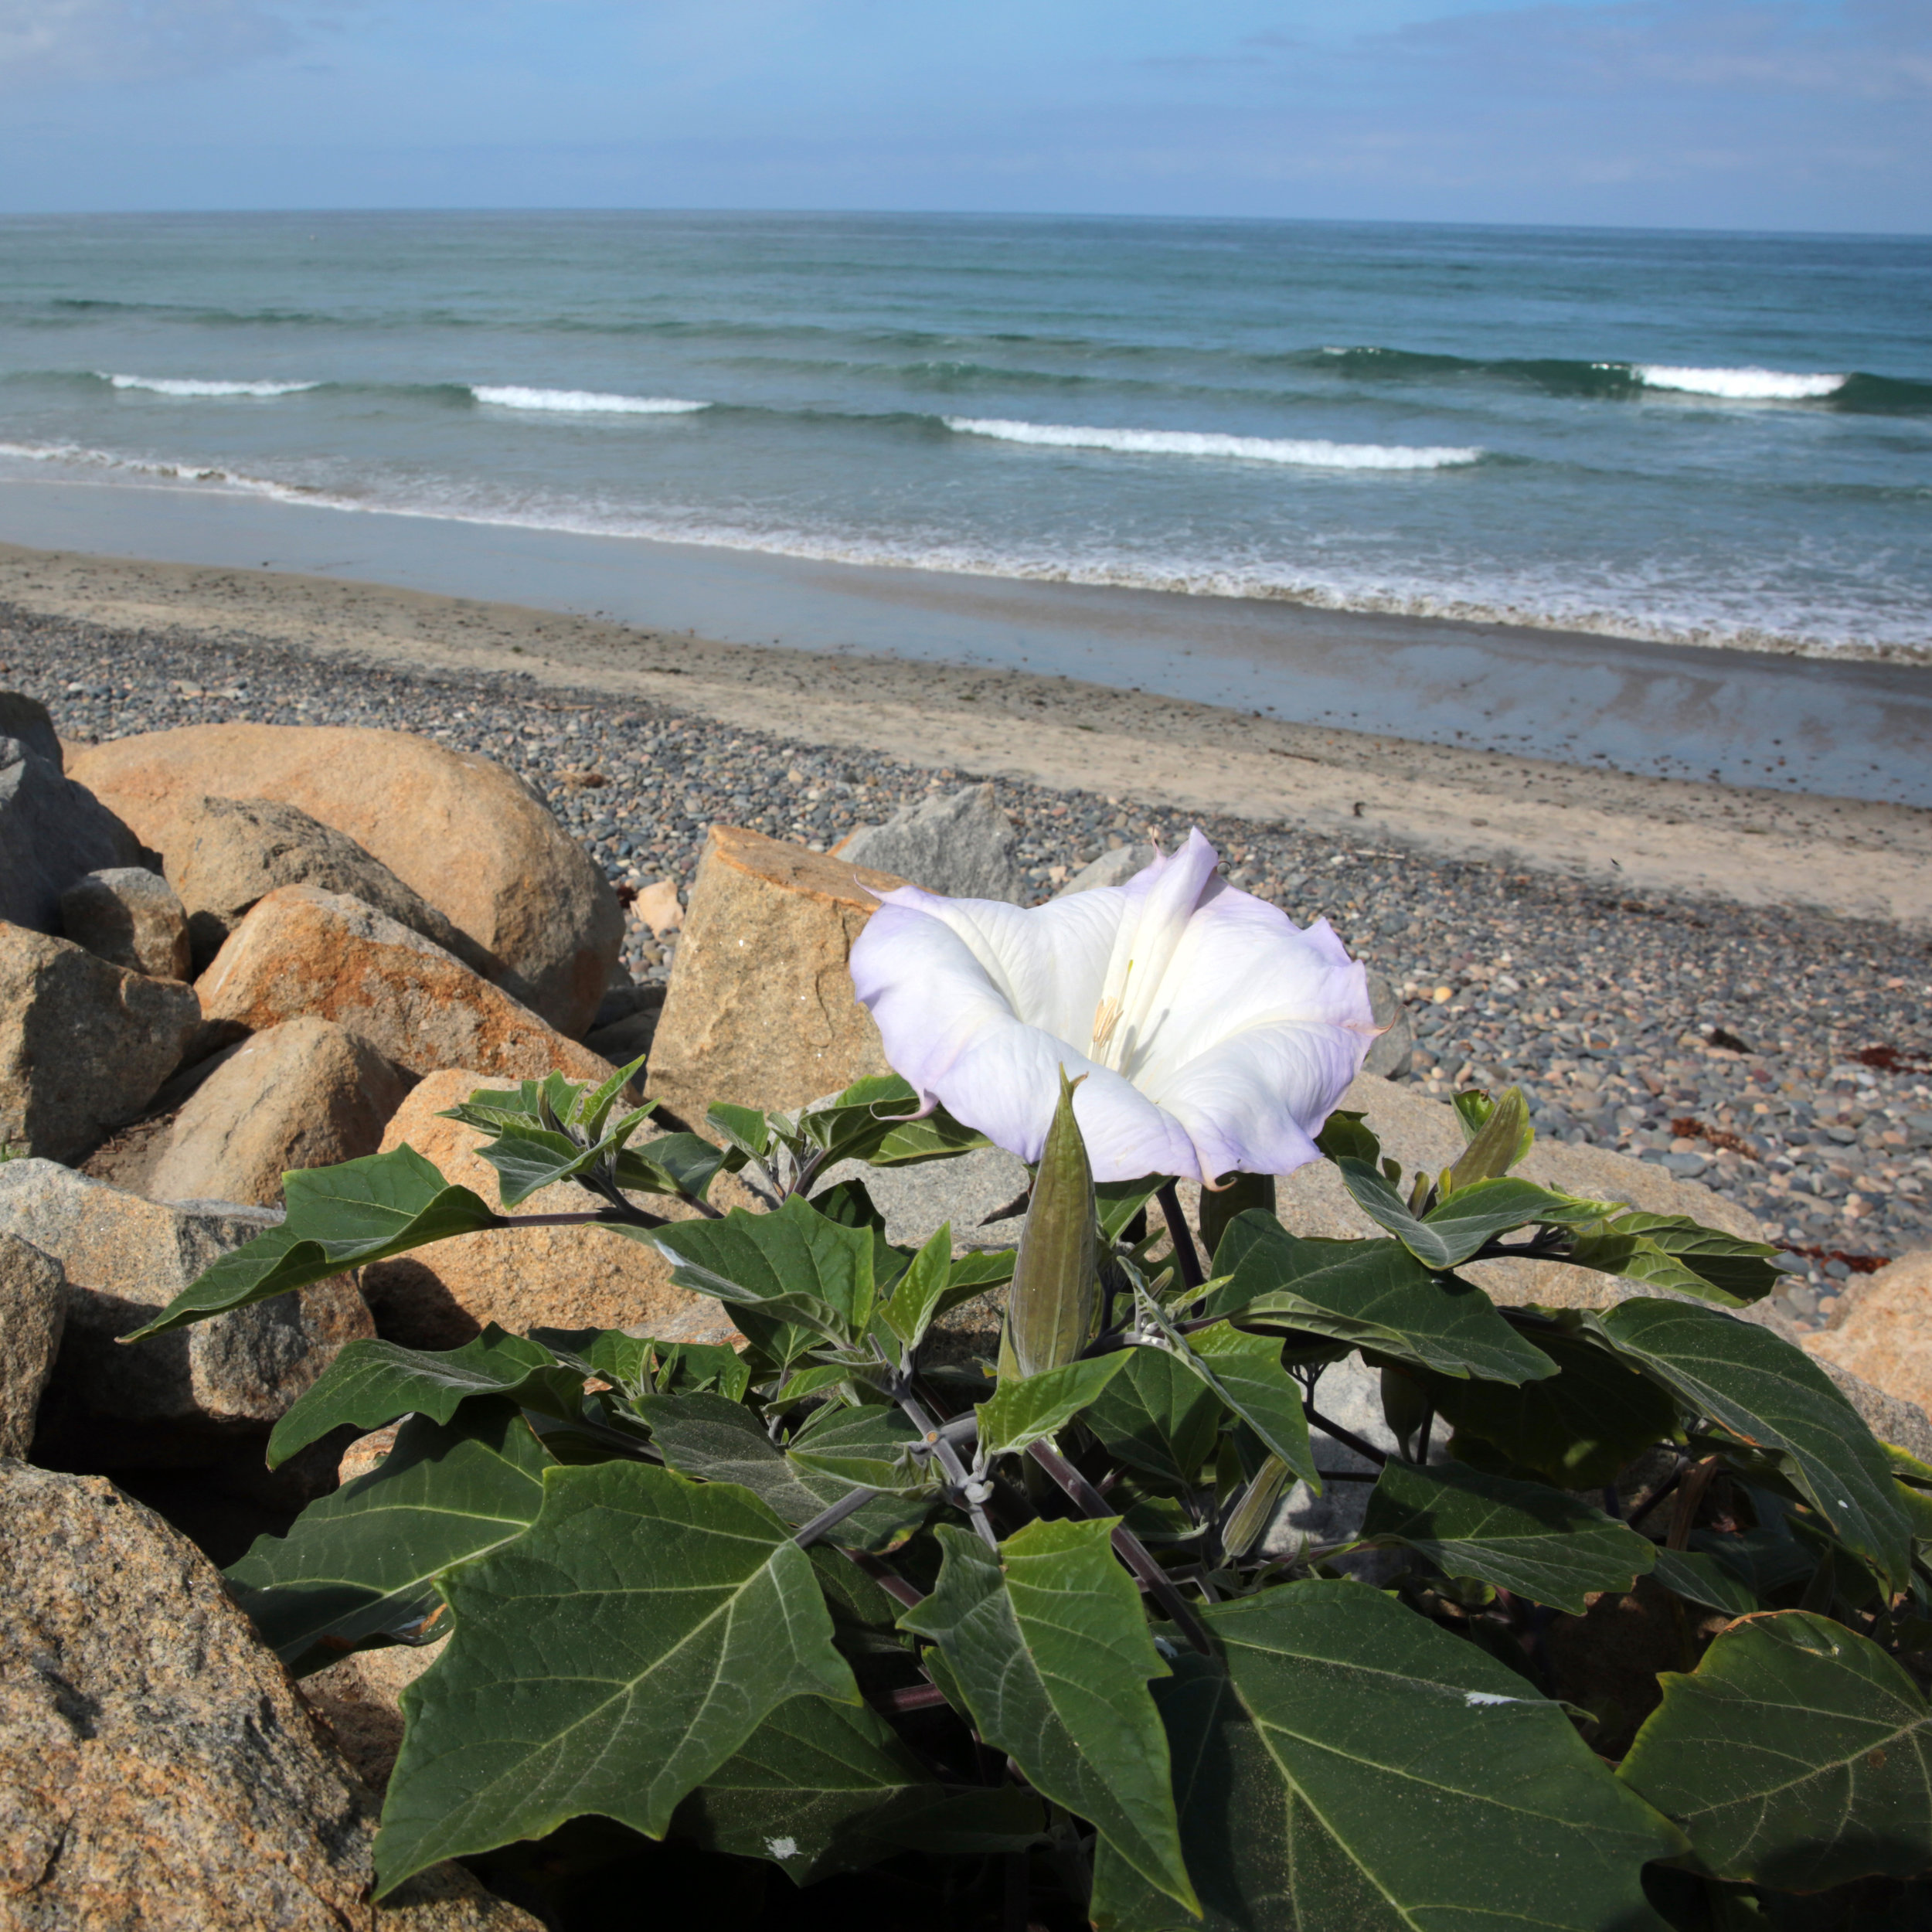 The citrusy fragrance of Sacred Datura (Datura wrightii) blends with the scent of ocean air at Torrey Pines State Beach just after dawn.